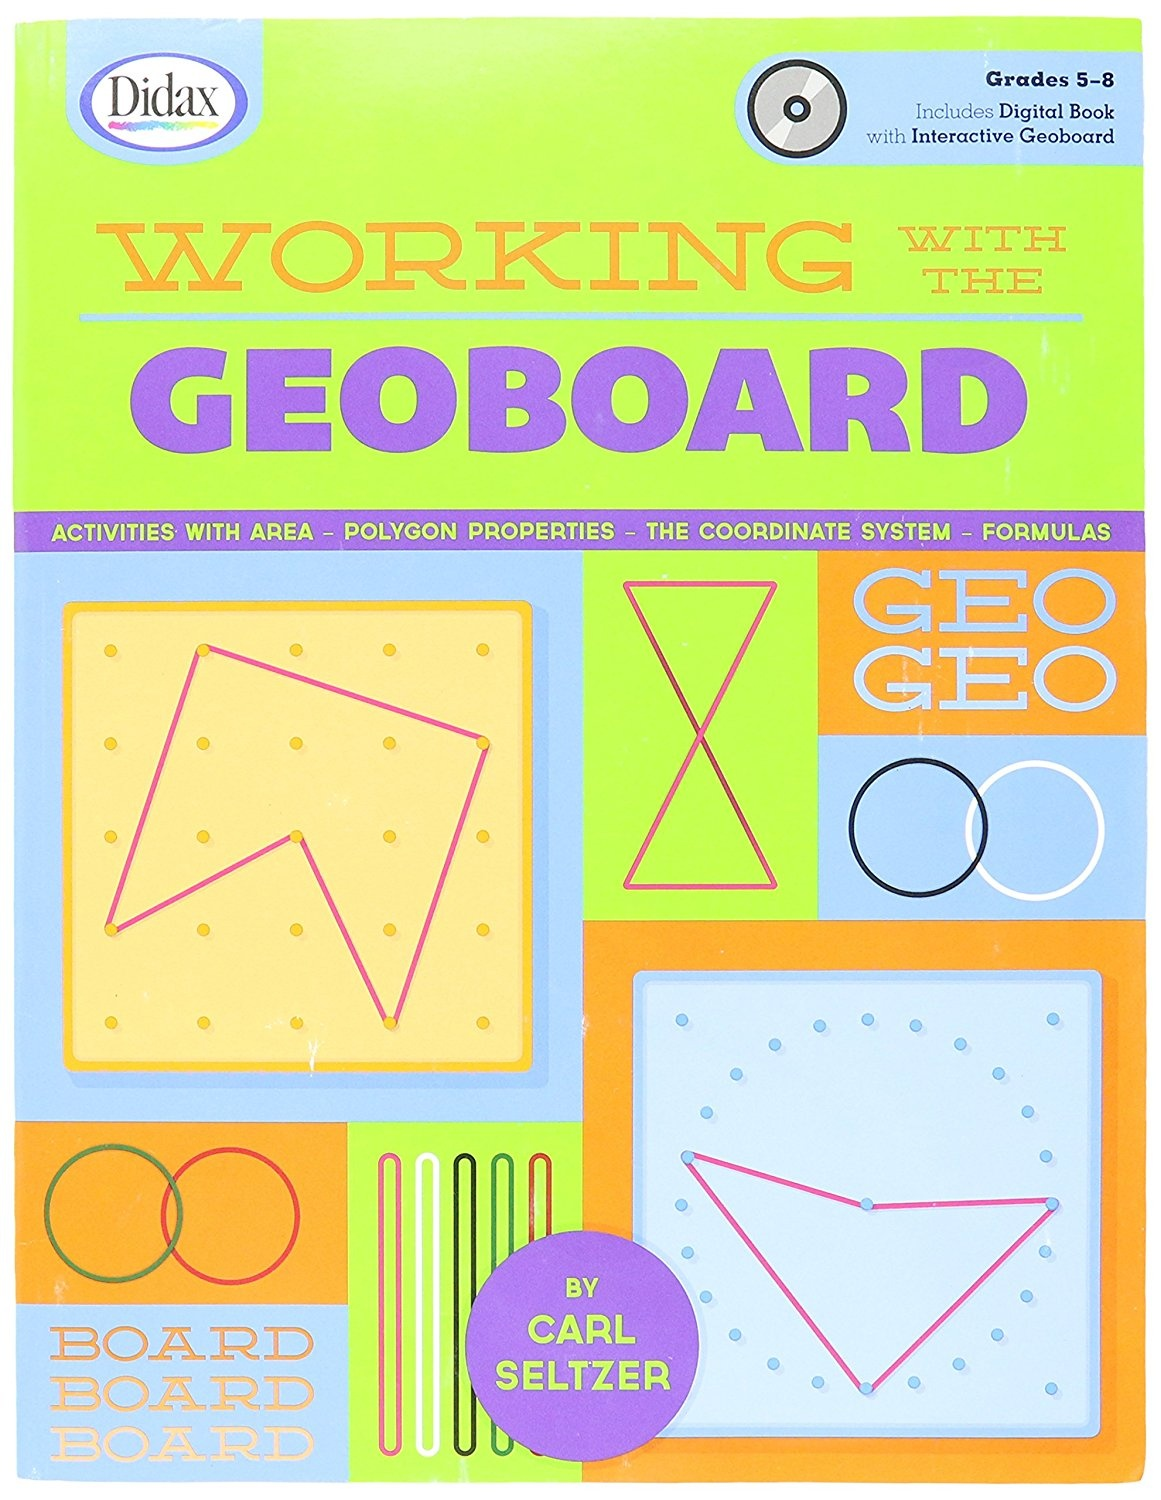 Working 8 Didax Resources With Educational GeoboardsGr5 EYeWHID29b